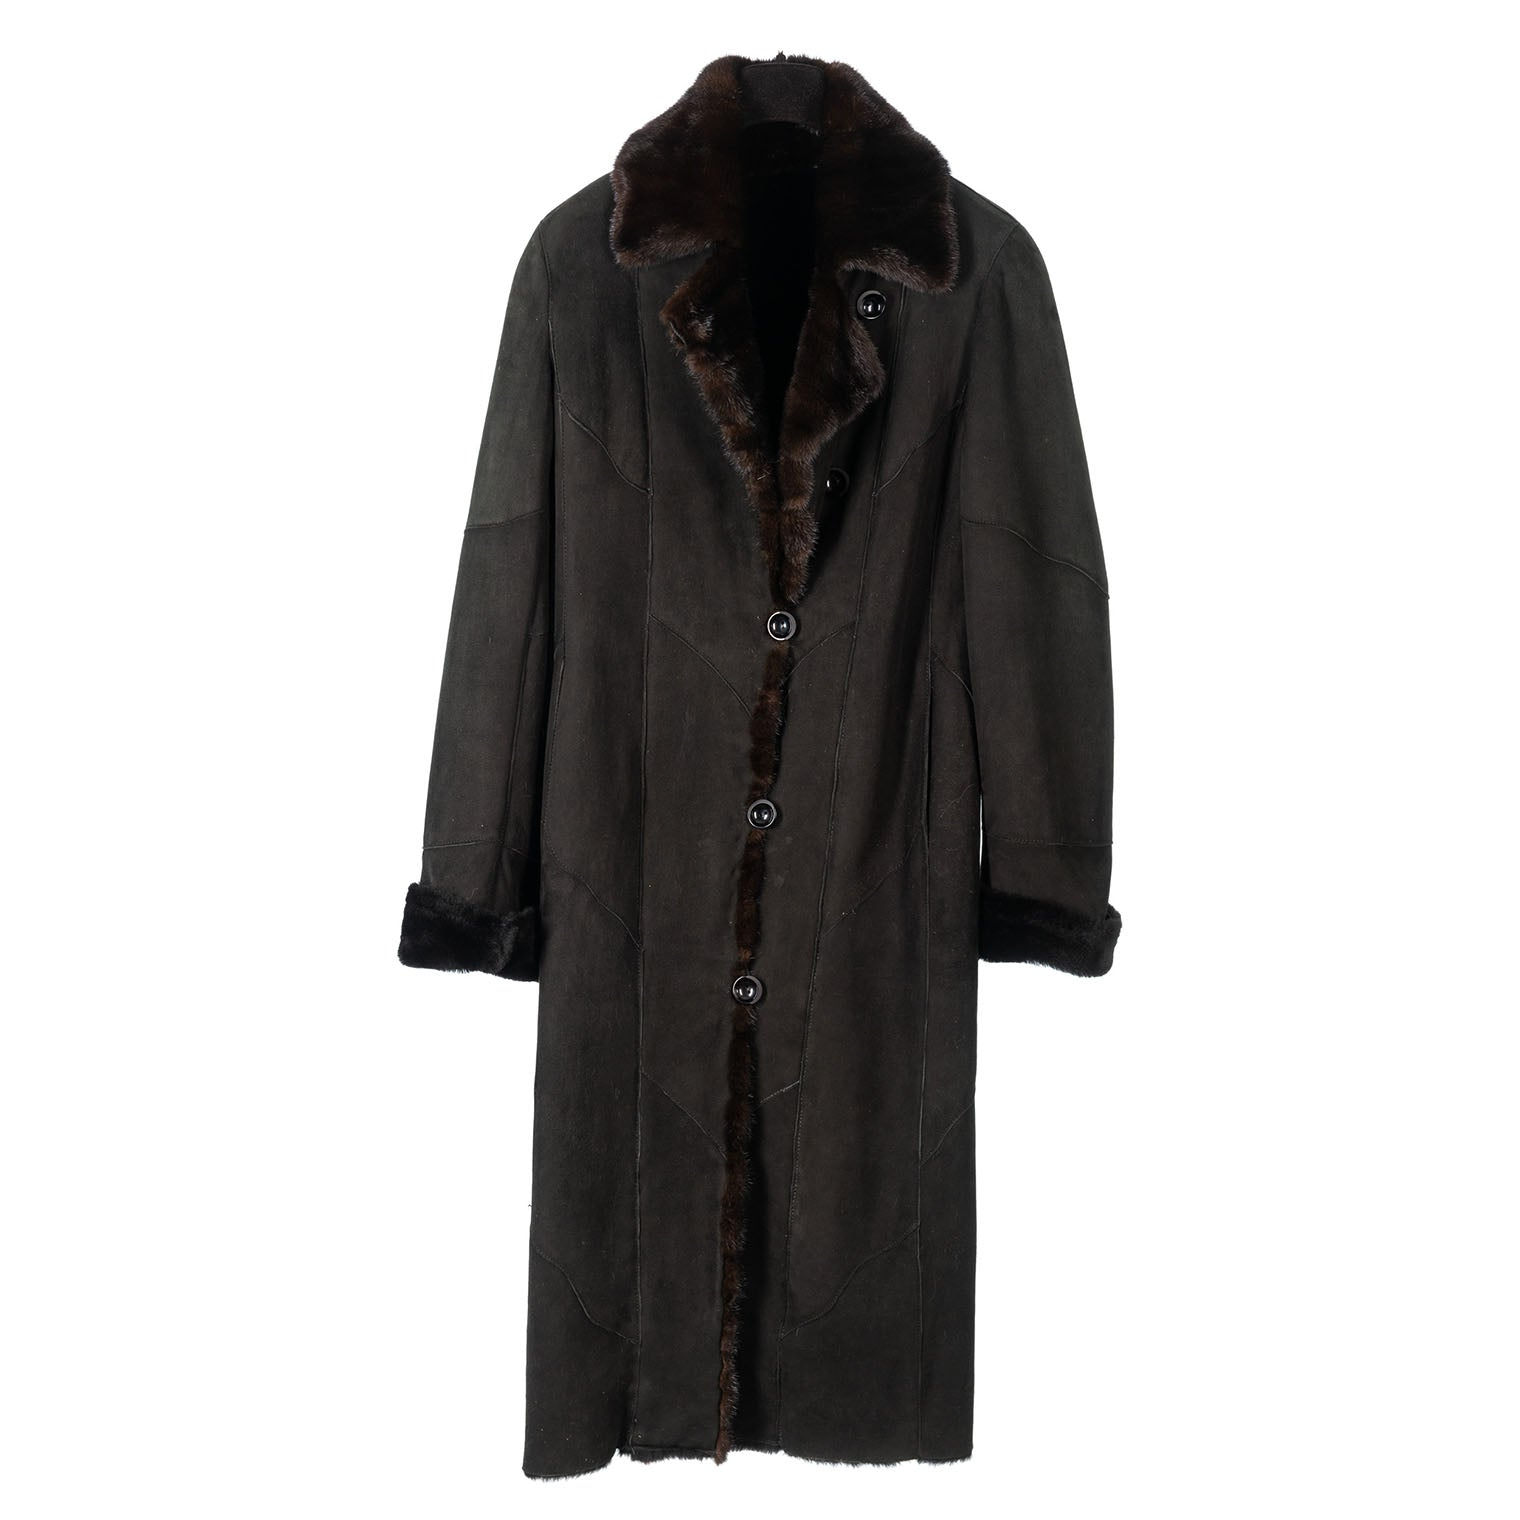 Black Merino Lamb Shearling Coat with Dark Ranch Mink Trim